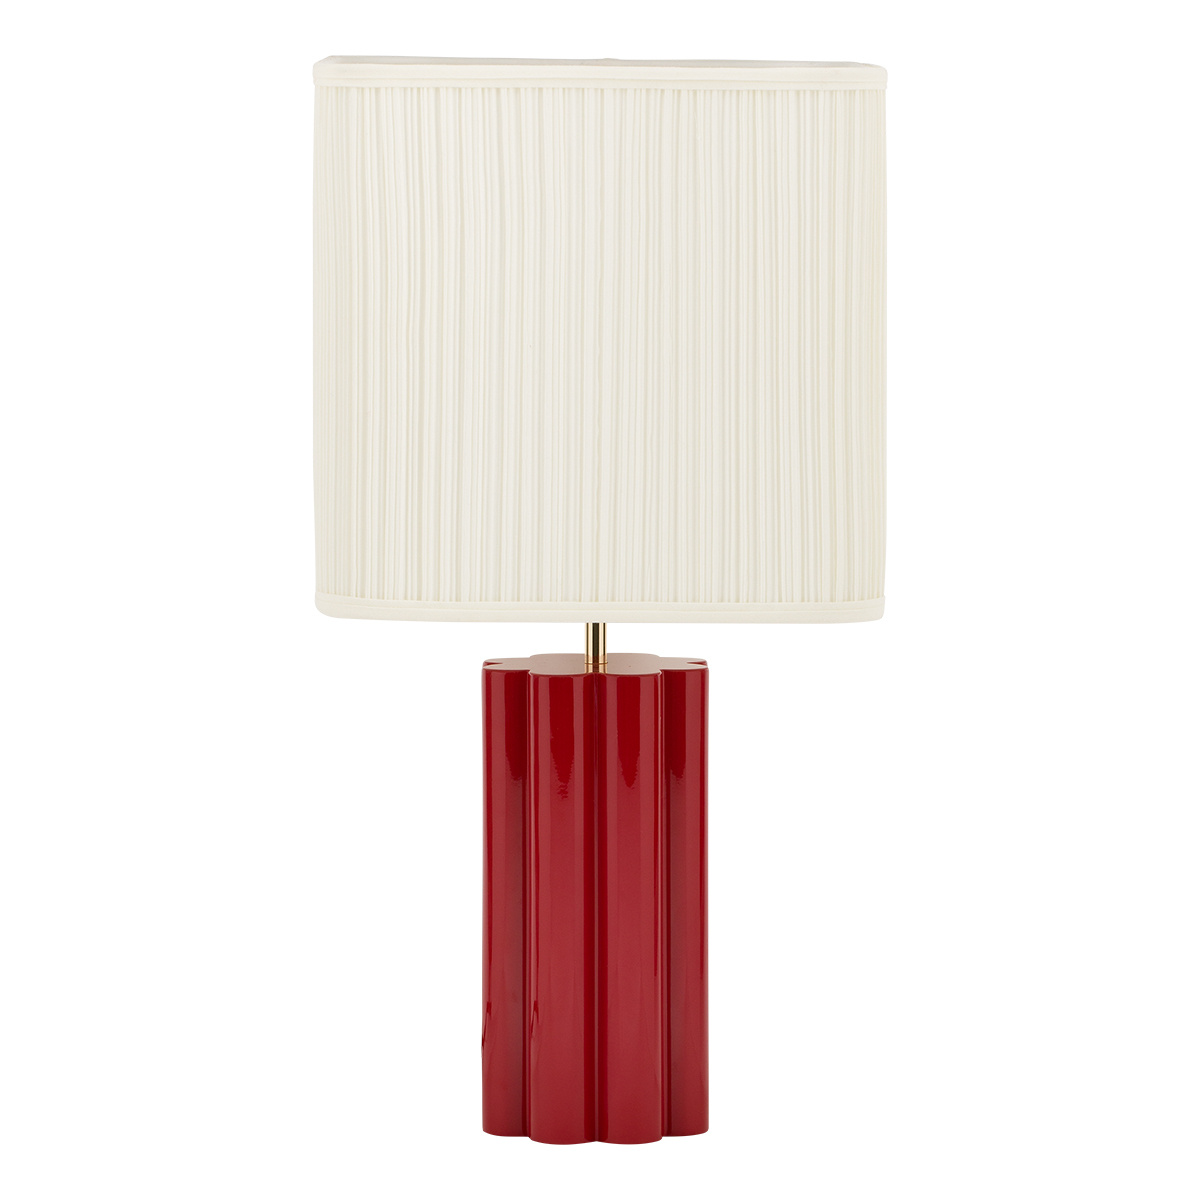 Gioia Table Lamp, Red